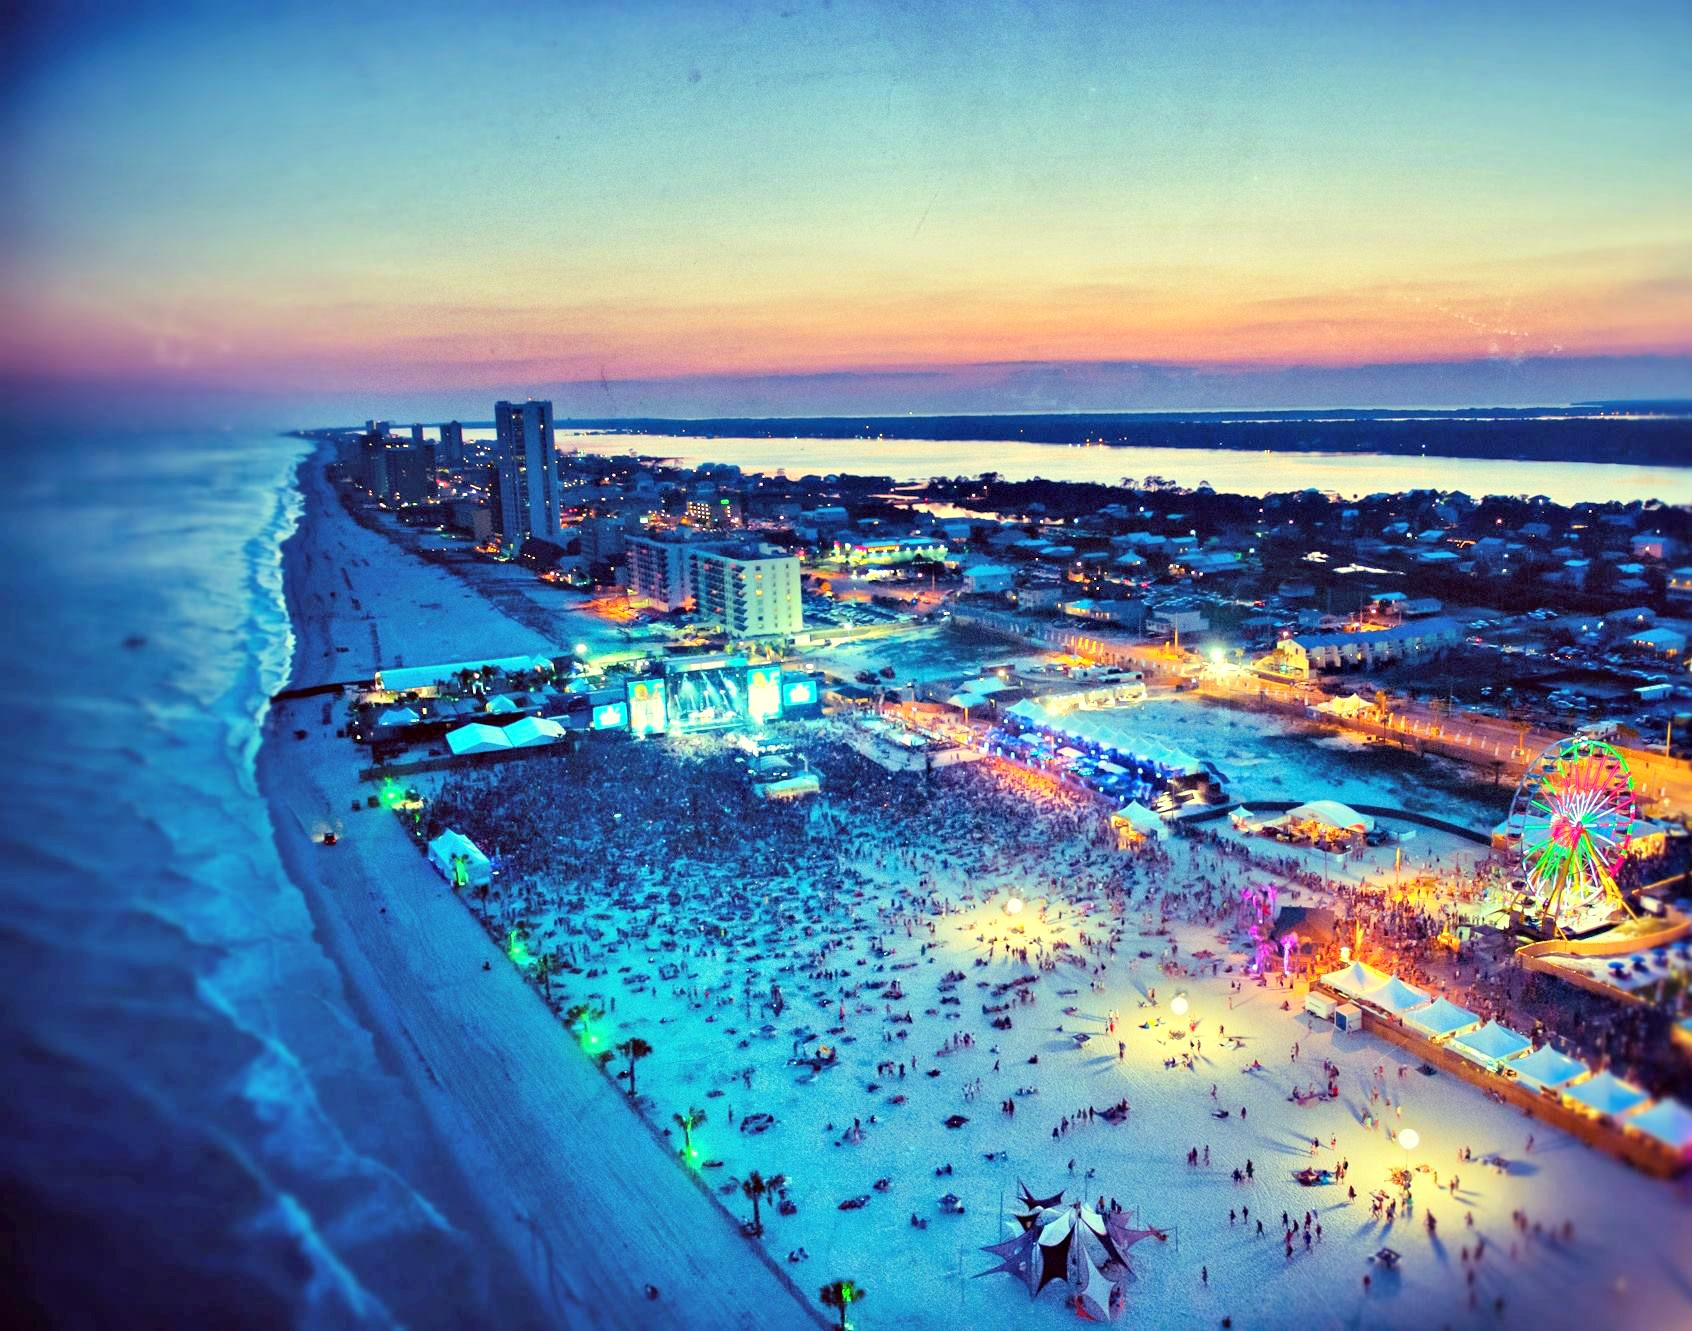 Hangout Music Festival on the beach in Gulf Shores AL